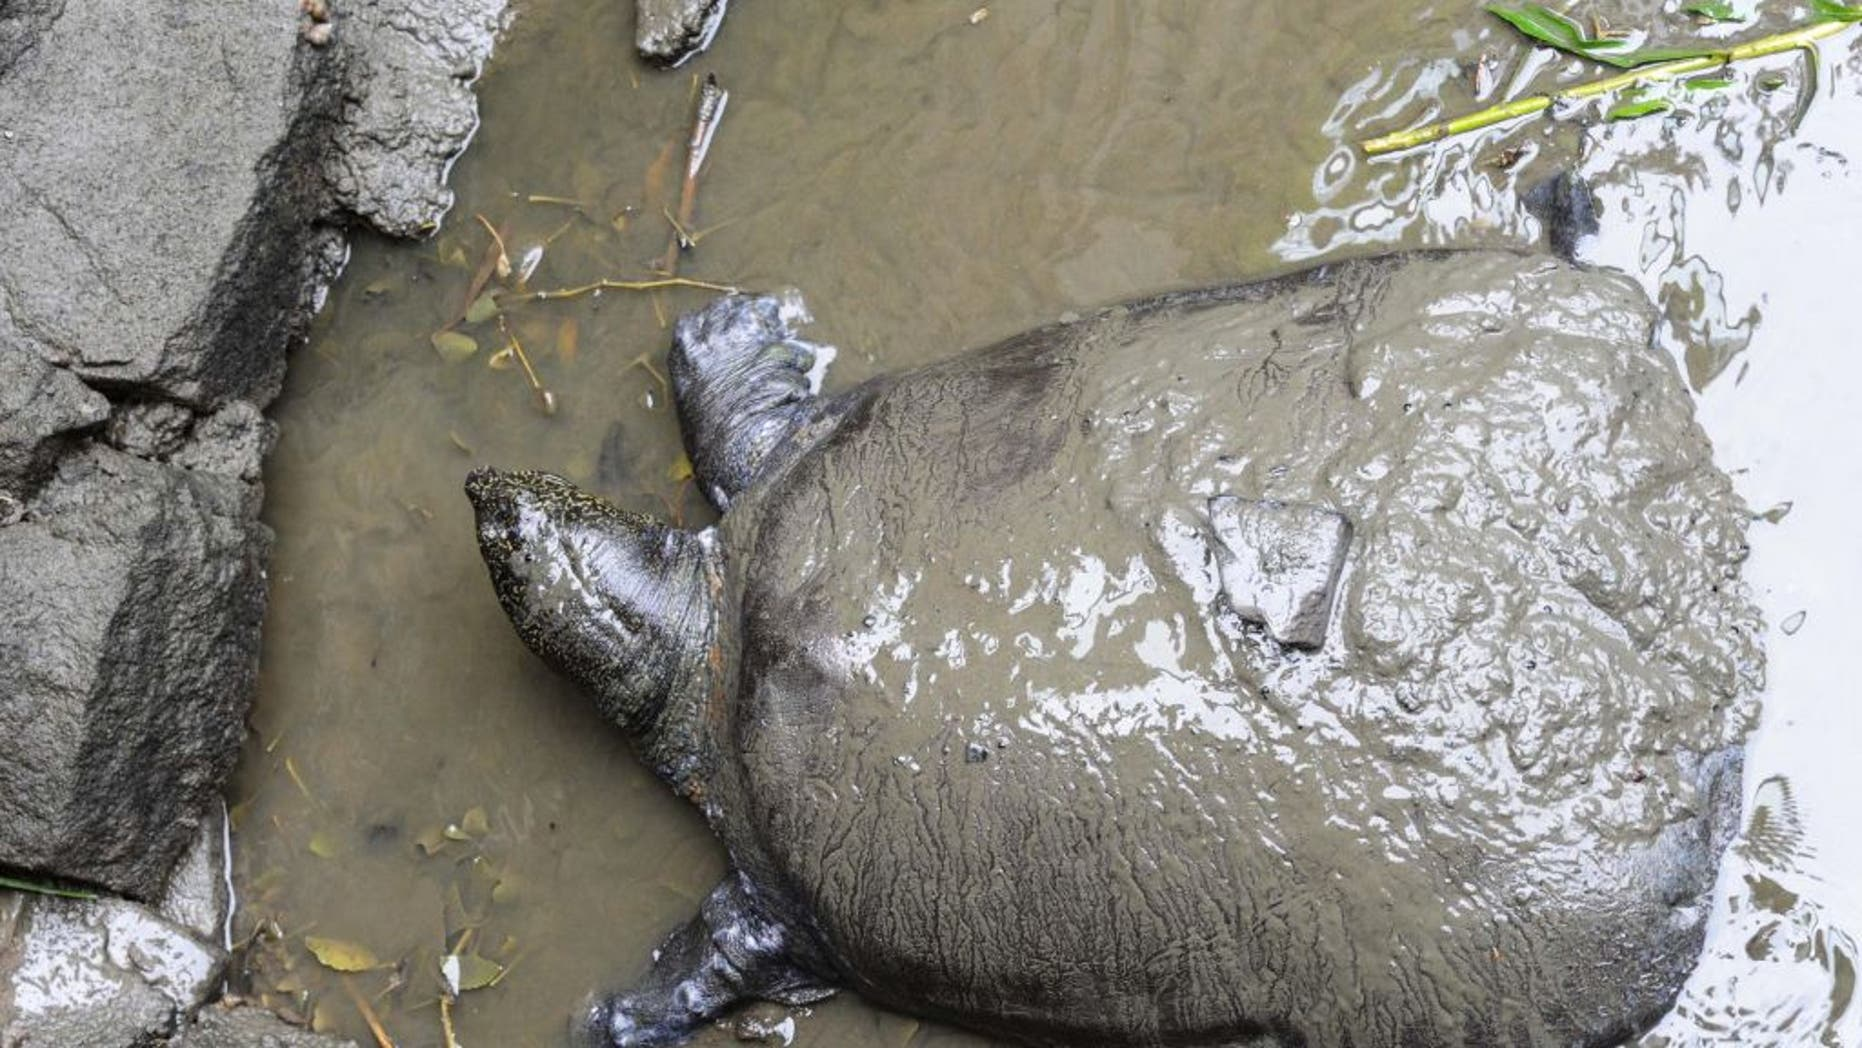 The world's last known female Yangtze giant softshell turtle (seen here in 2015) died at China's Suzhou Zoo this weekend, leaving only 3 individuals of the species left on Earth.